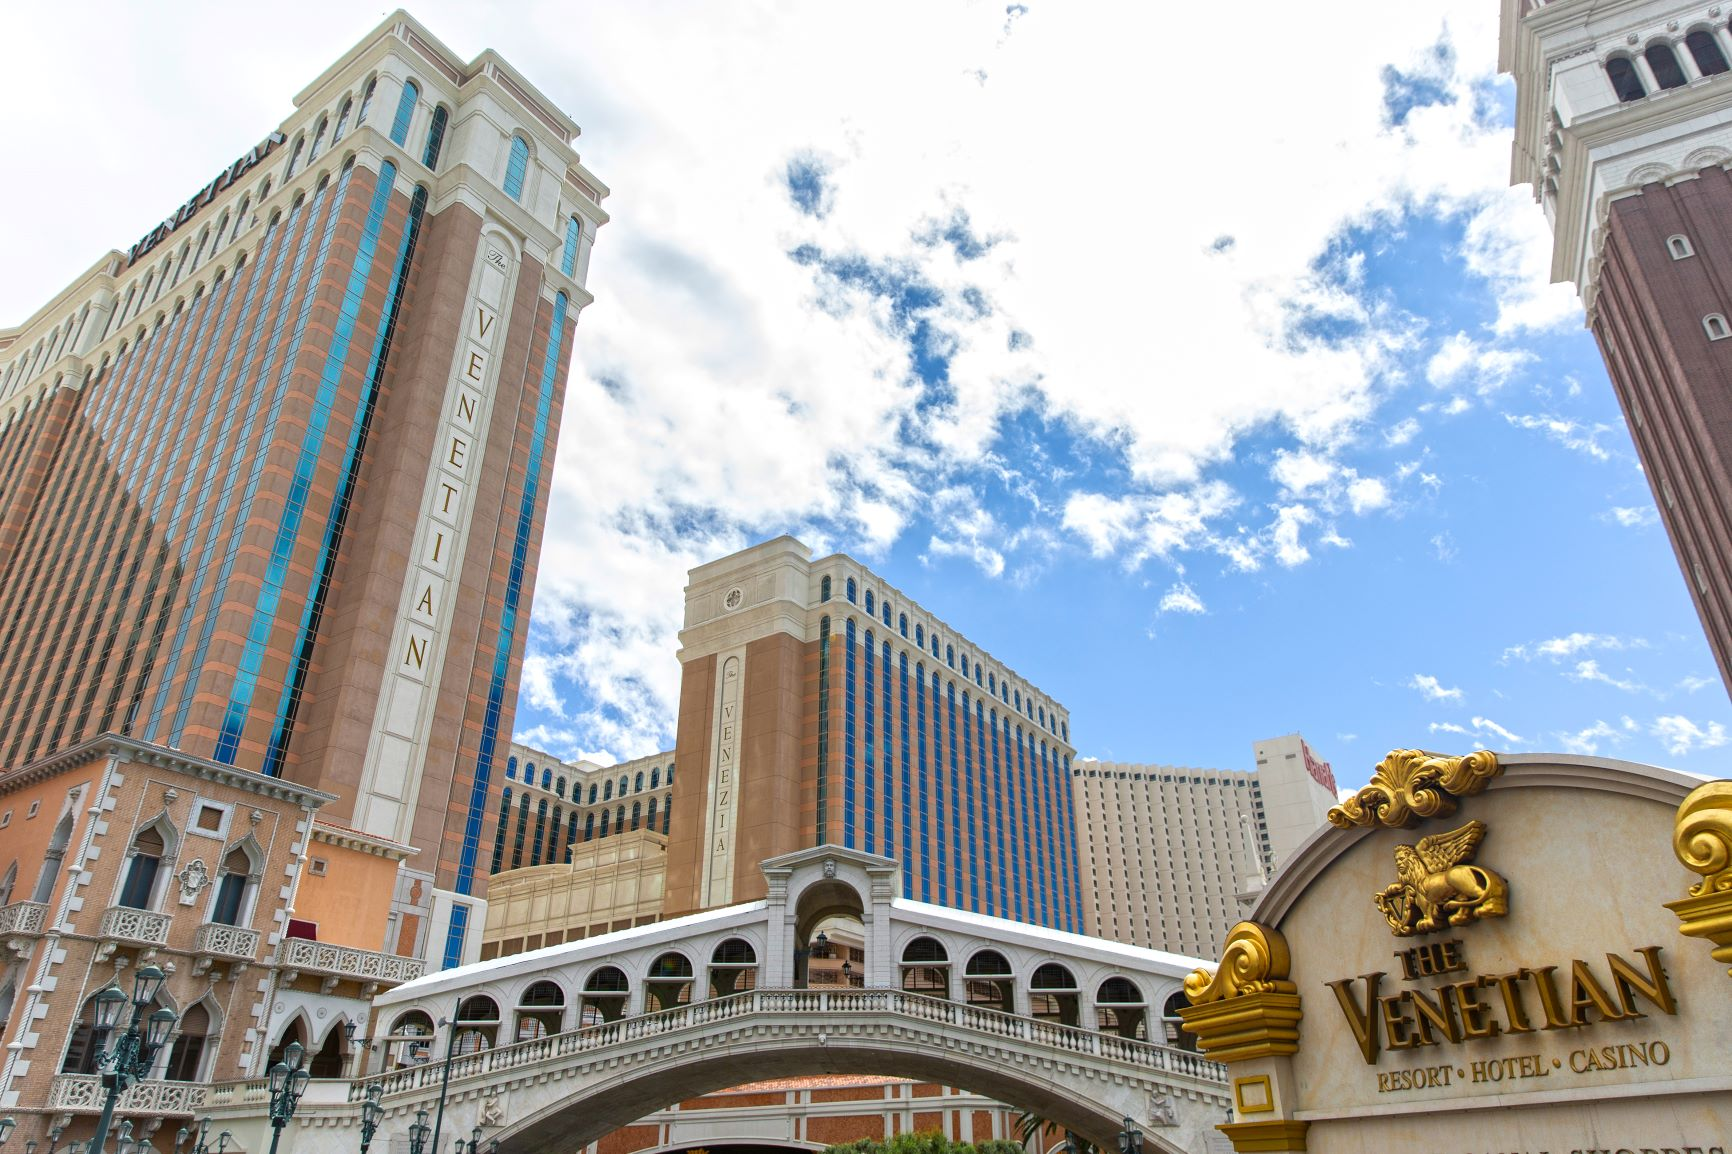 mgm-resorts-selling-aria,-vdara-for-nearly-$4b-and-leasing-them-back